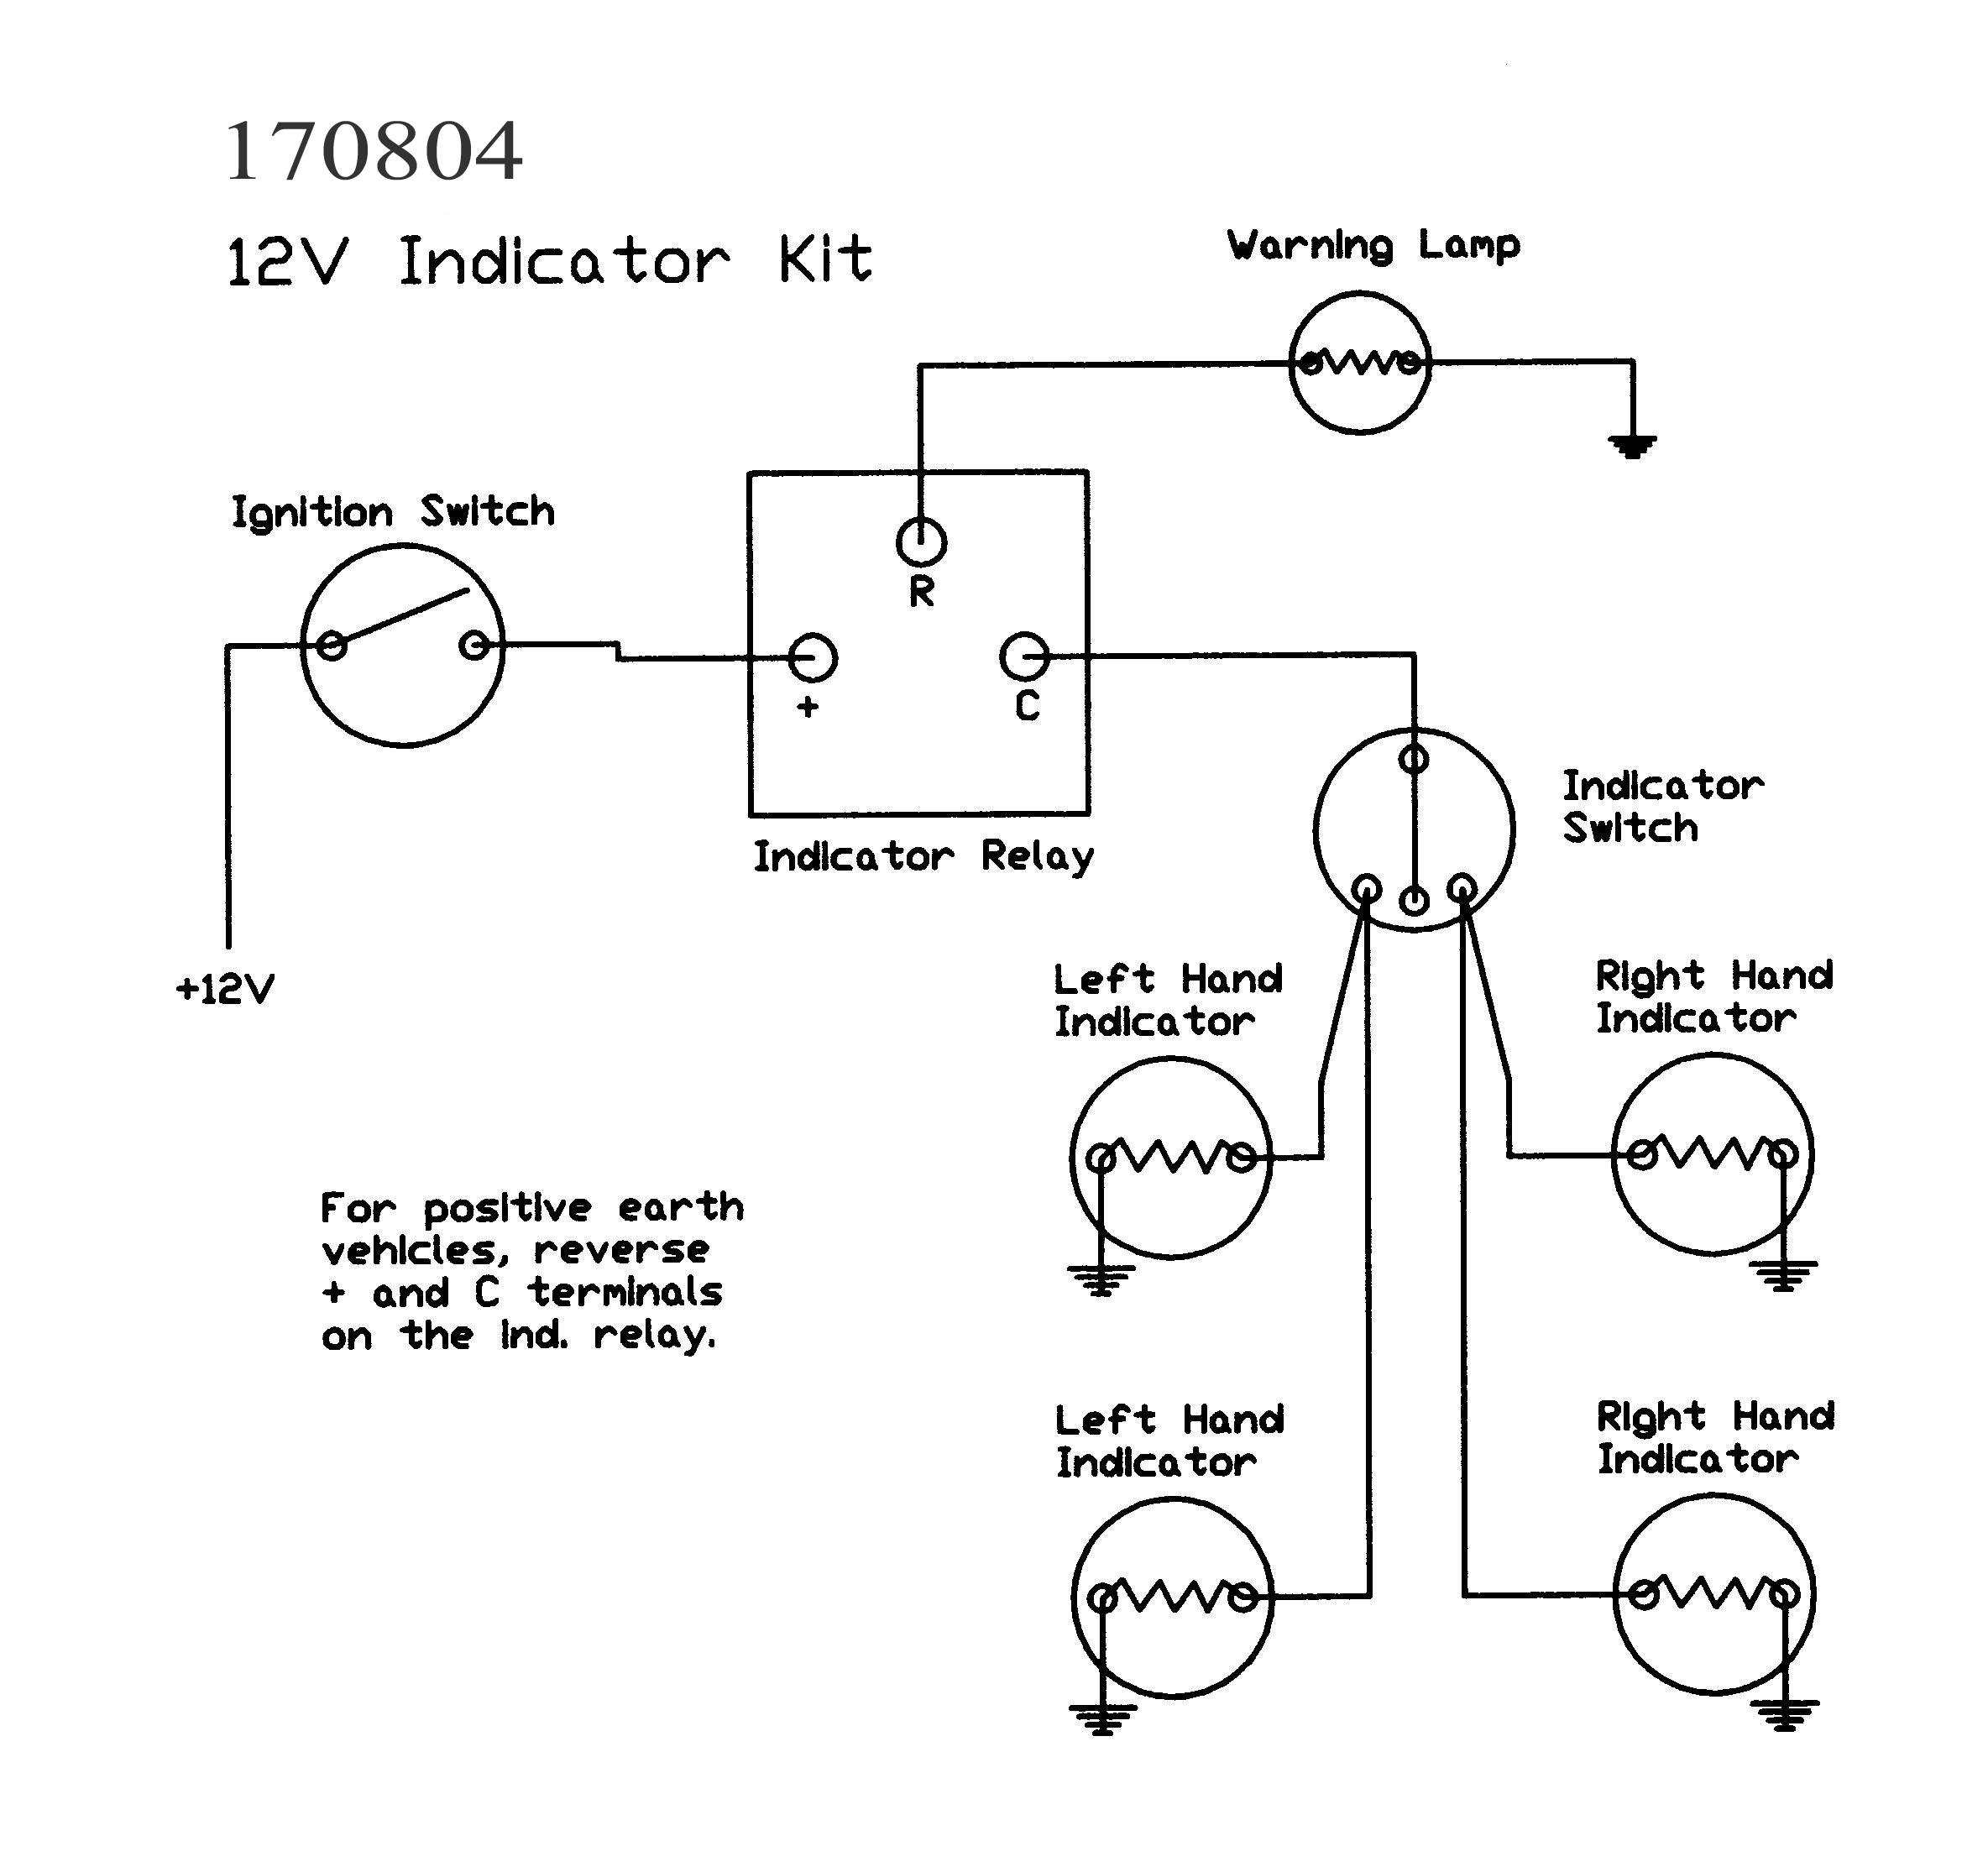 170804_(12v)_schematic?resize=665%2C625&ssl=1 flasher wiring diagram the best wiring diagram 2017 flasher unit wiring diagram at crackthecode.co